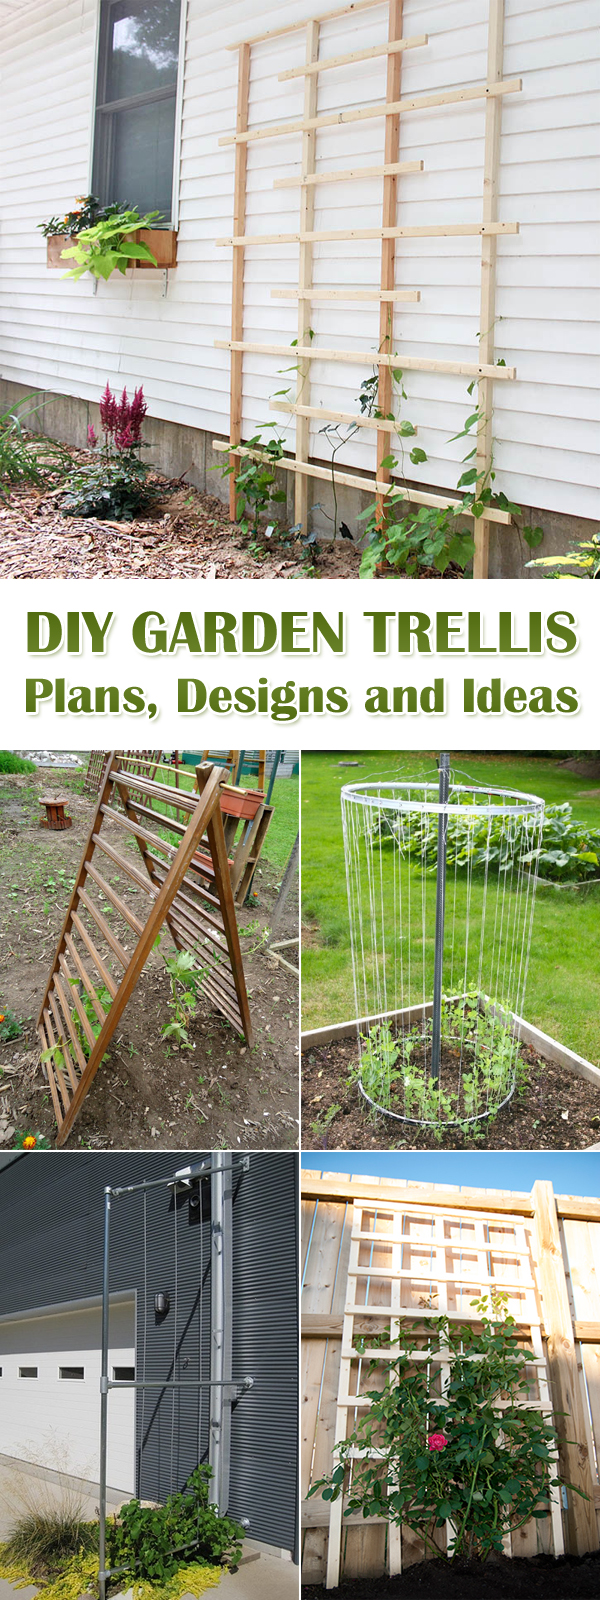 12 diy garden trellis plans designs and ideas - Trellis Design Ideas